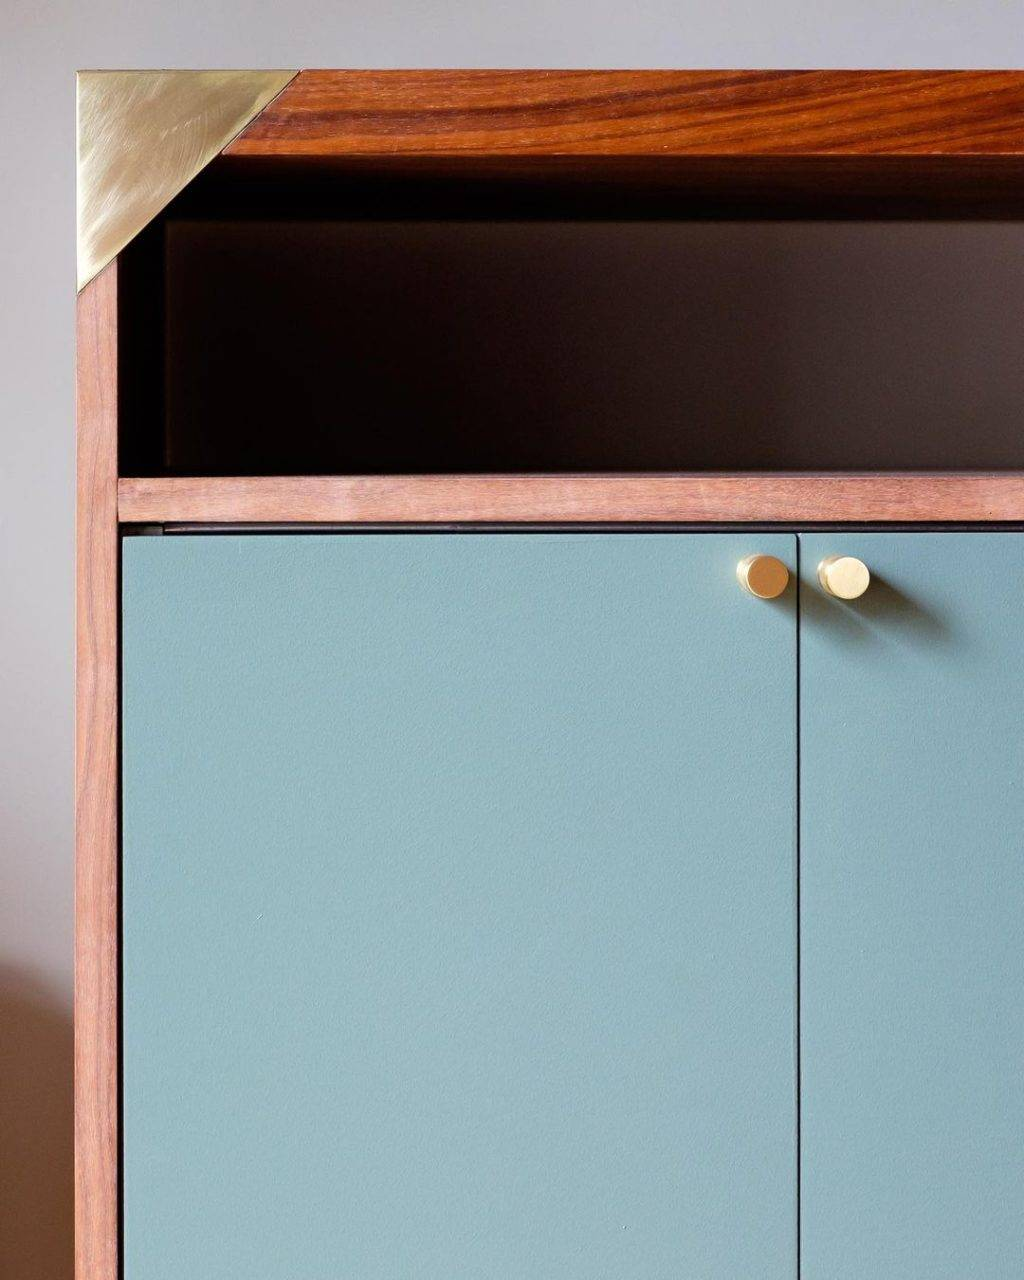 turquoise and wood cabinet with gold knob hardware